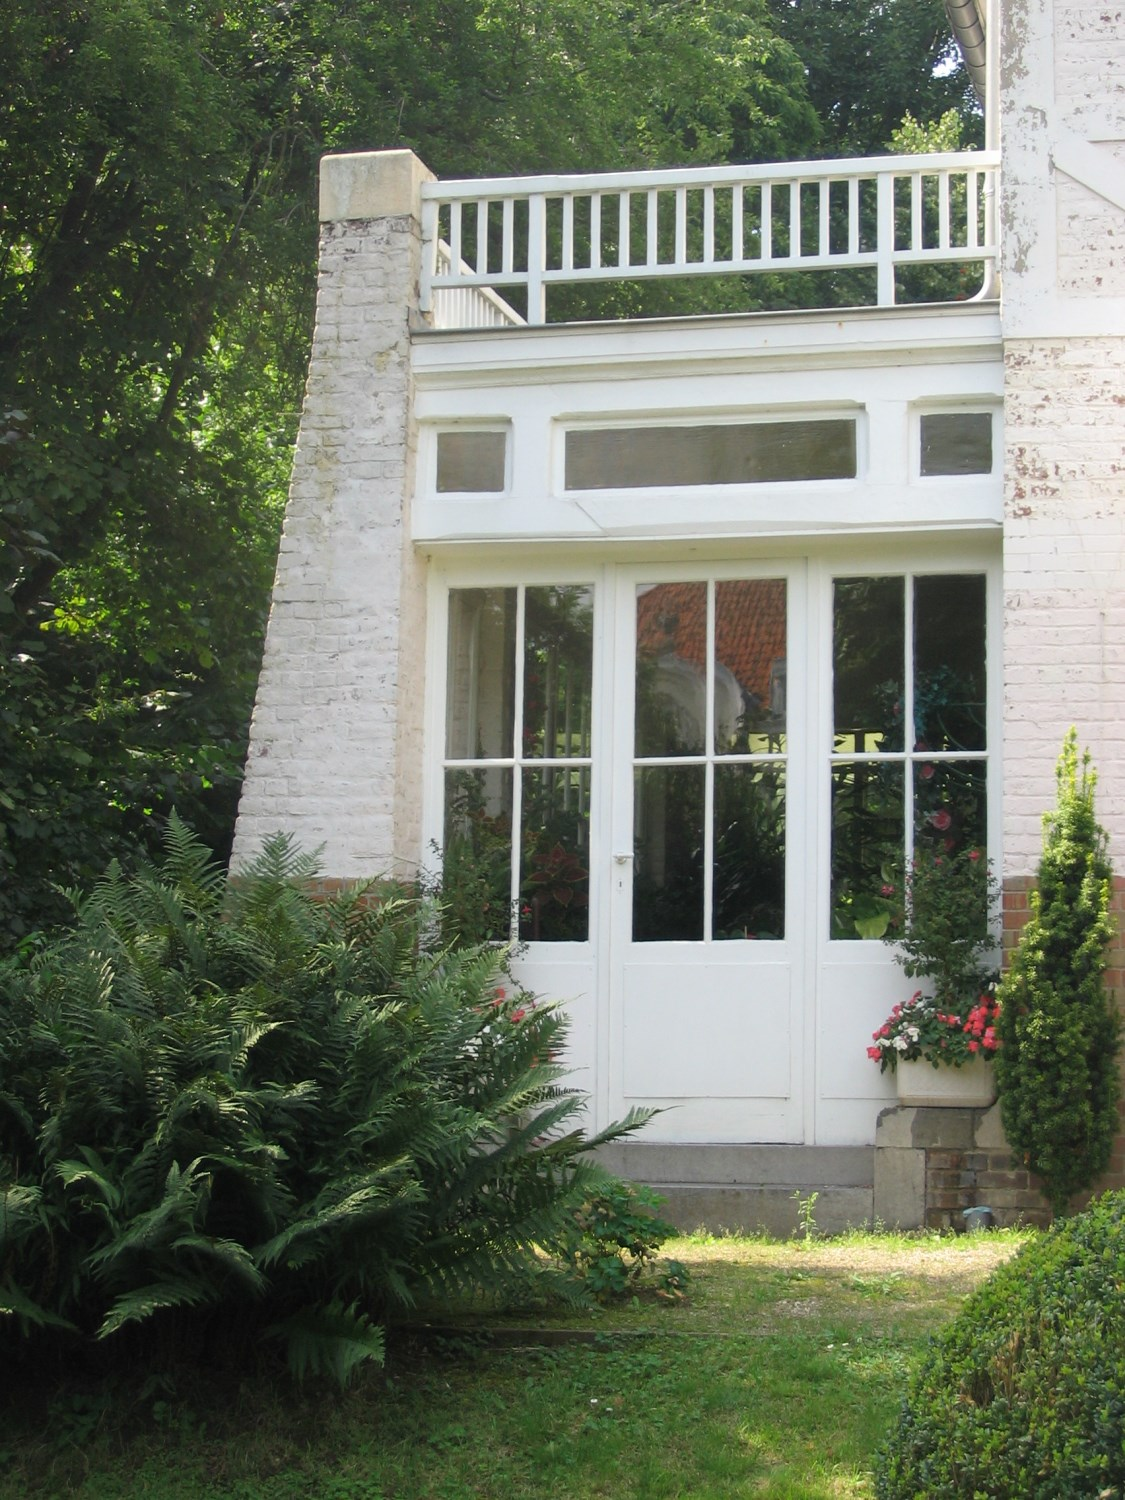 woluwe saint pierre mature dating site Woluwé-saint-pierre – this commune on the outskirts of the city has an impressive city hall, the leafy woluwe park,  dating back to the 1840s,.